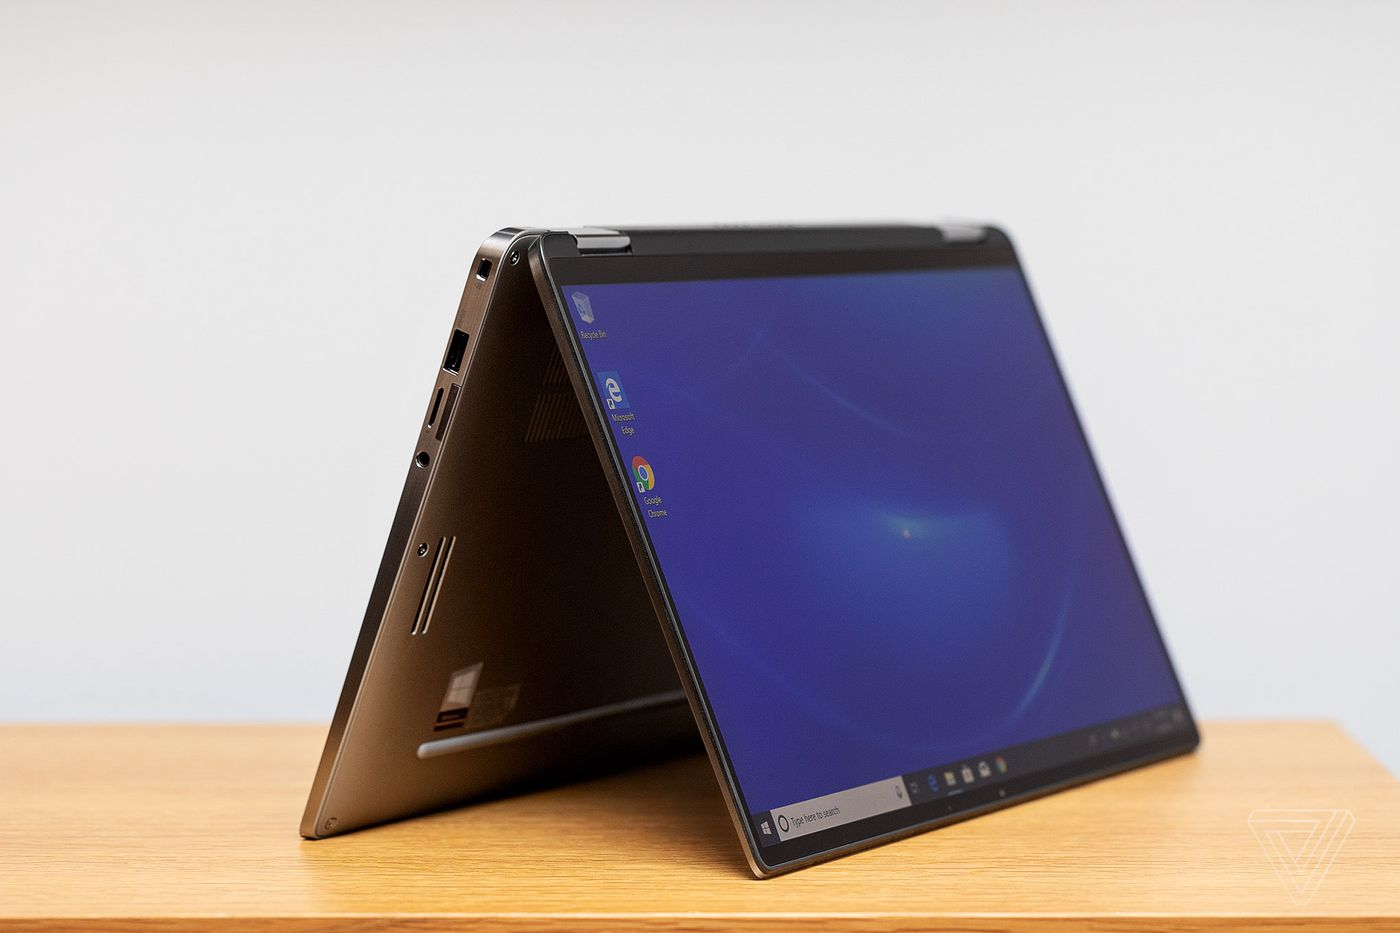 Dell's new Latitude 7400 2-in-1 business laptop logs you in